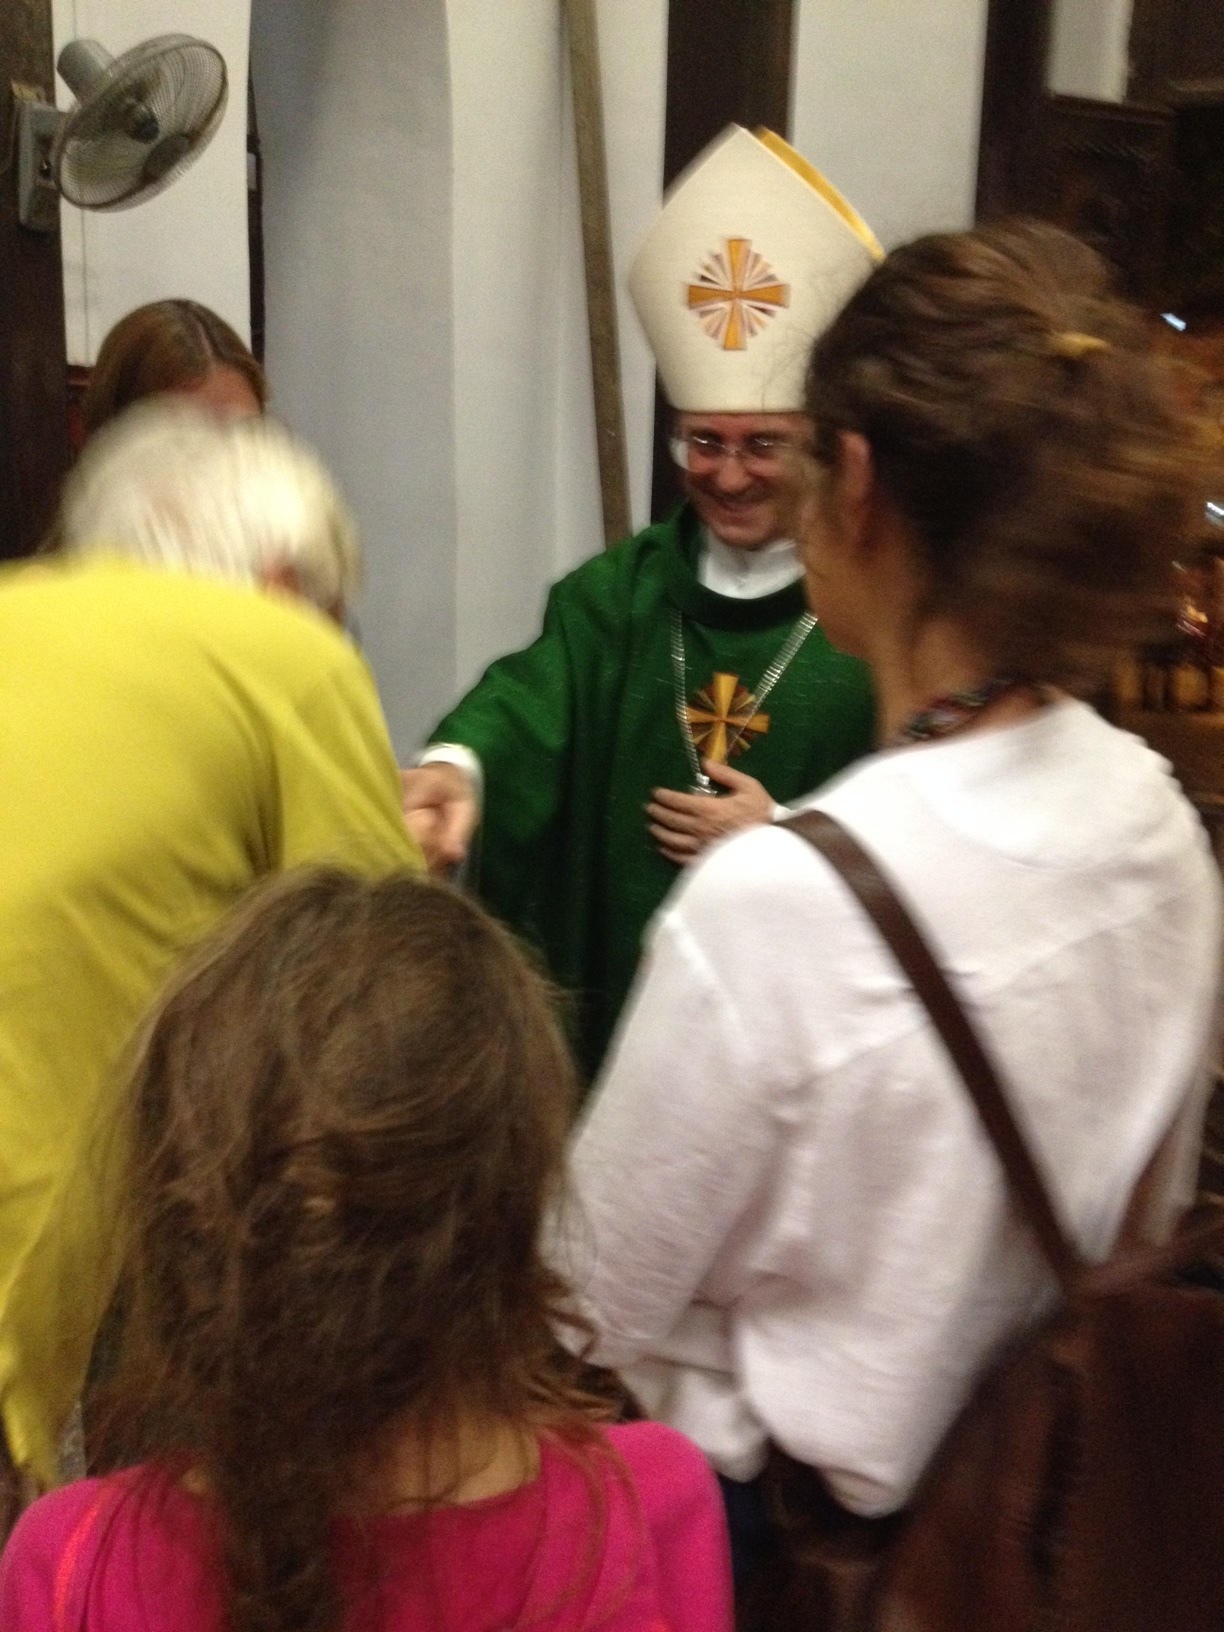 Dante got to greet him personally and introduced me and Lili. He wished us all 'Buone Vacanze'!